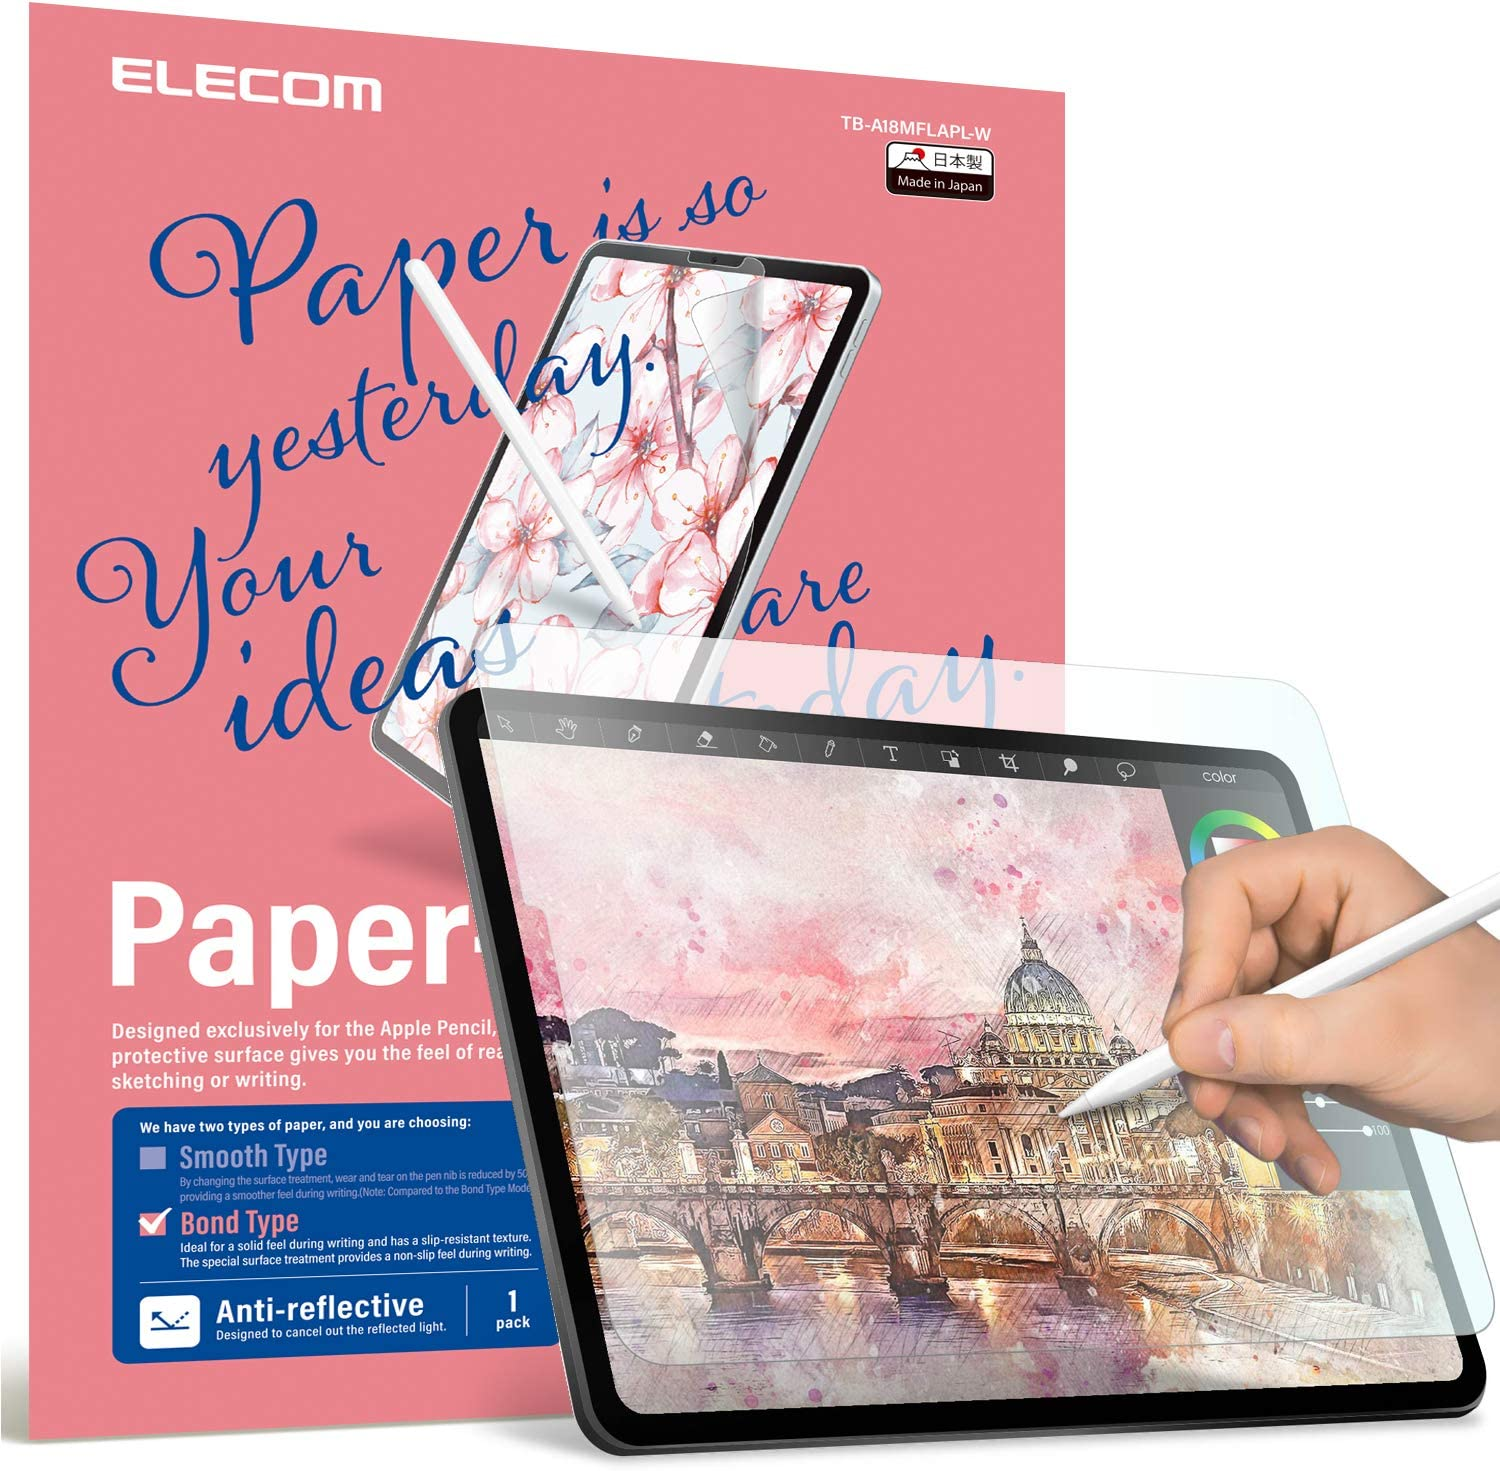 ELECOM Pencil-Feel Screen Protector Designed for Drawing, Anti-Glare Scratch-Resistant Bubble-Free, Compatible with iPad Air 4 (10.9inch, 2020) / iPad Pro 11